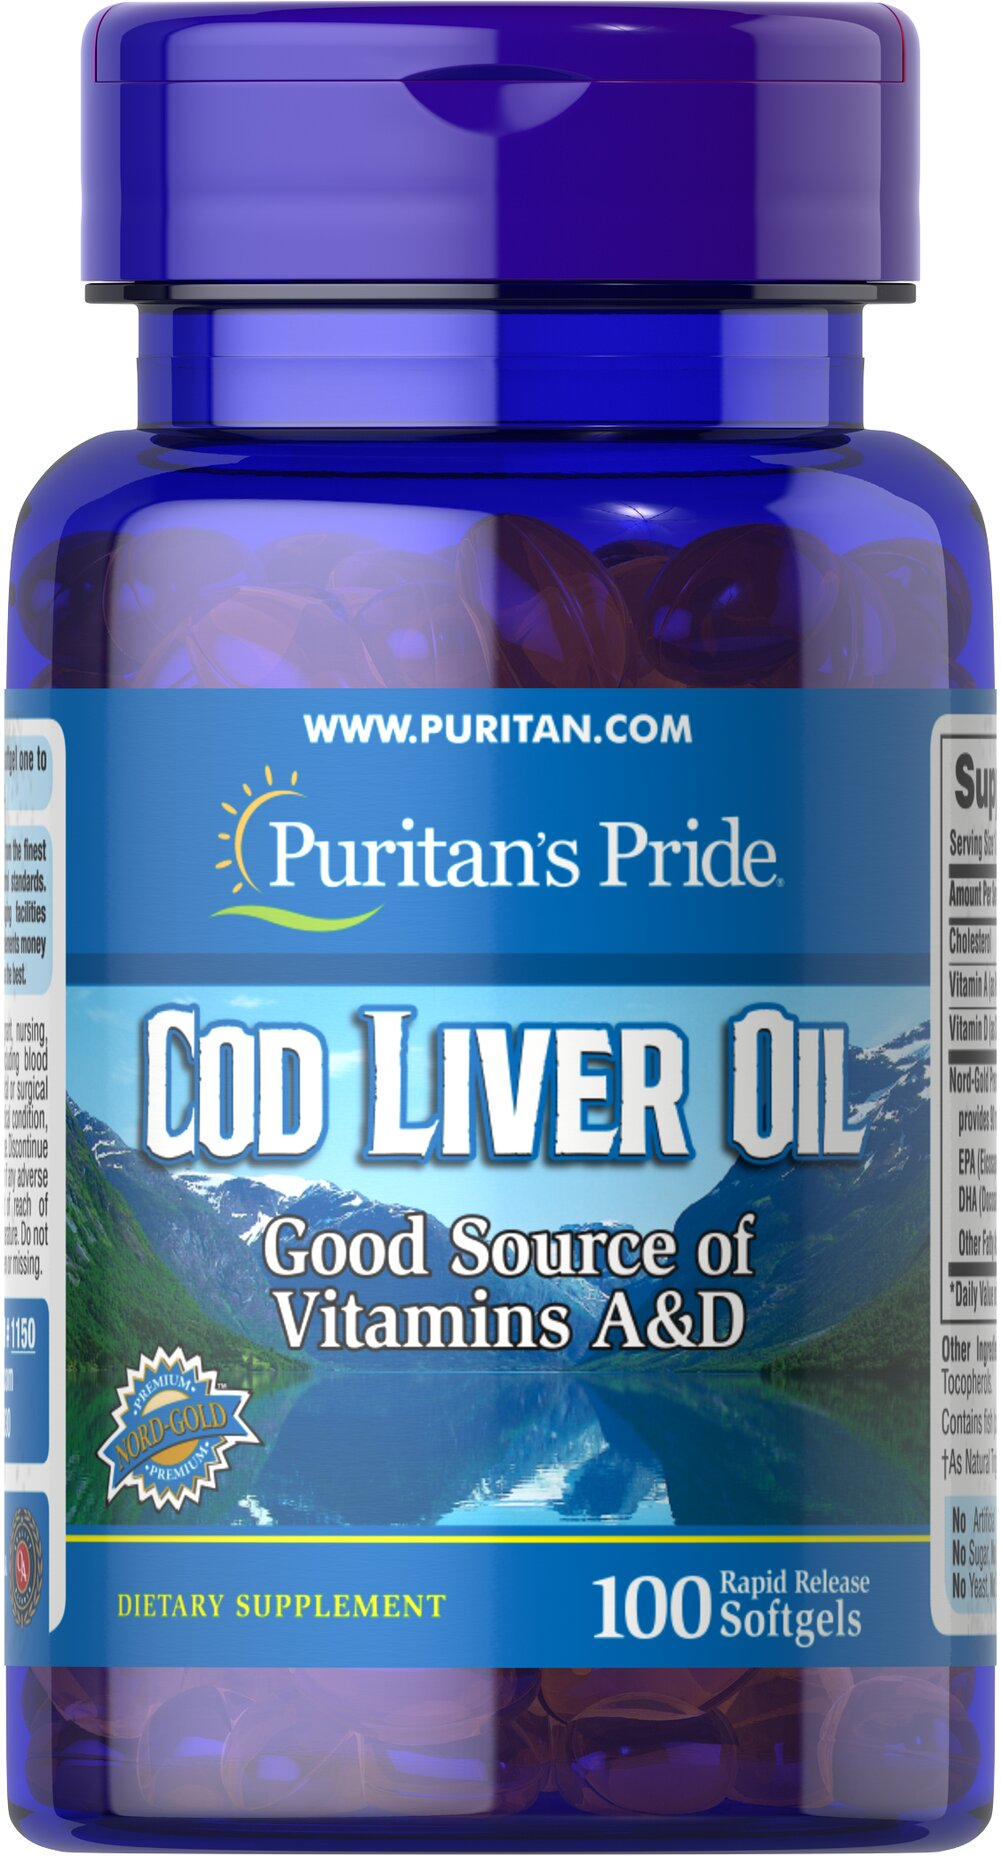 Norwegian Cod Liver Oil 415 mg <p>Norwegian cod has traditionally been one of the most popular natural sources of  <strong>both Vitamins A & D</strong>. </p><p>Vitamin D helps maintain healthy bones in adults. ** </p><p>Vitamin A helps maintain eye health. **</p><p>Vitamins A & D help regulate the immune system.**</p> 100 Softgels 415 mg $5.99